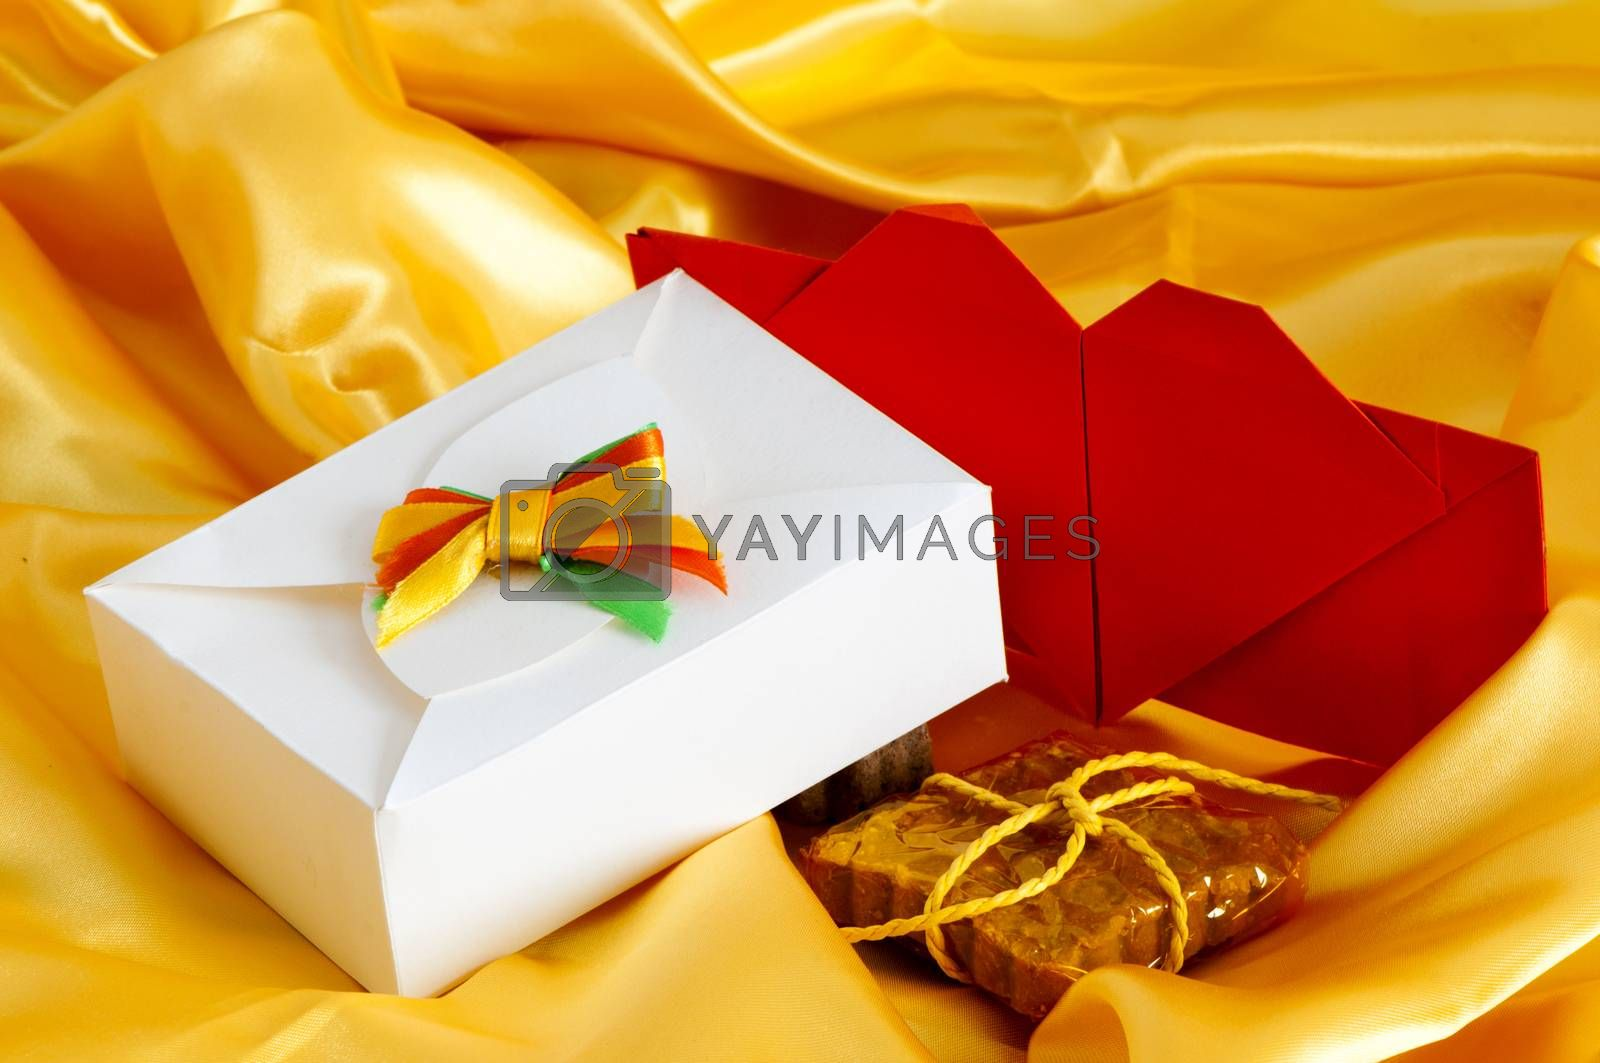 Royalty free image of Wedding favors by carla720